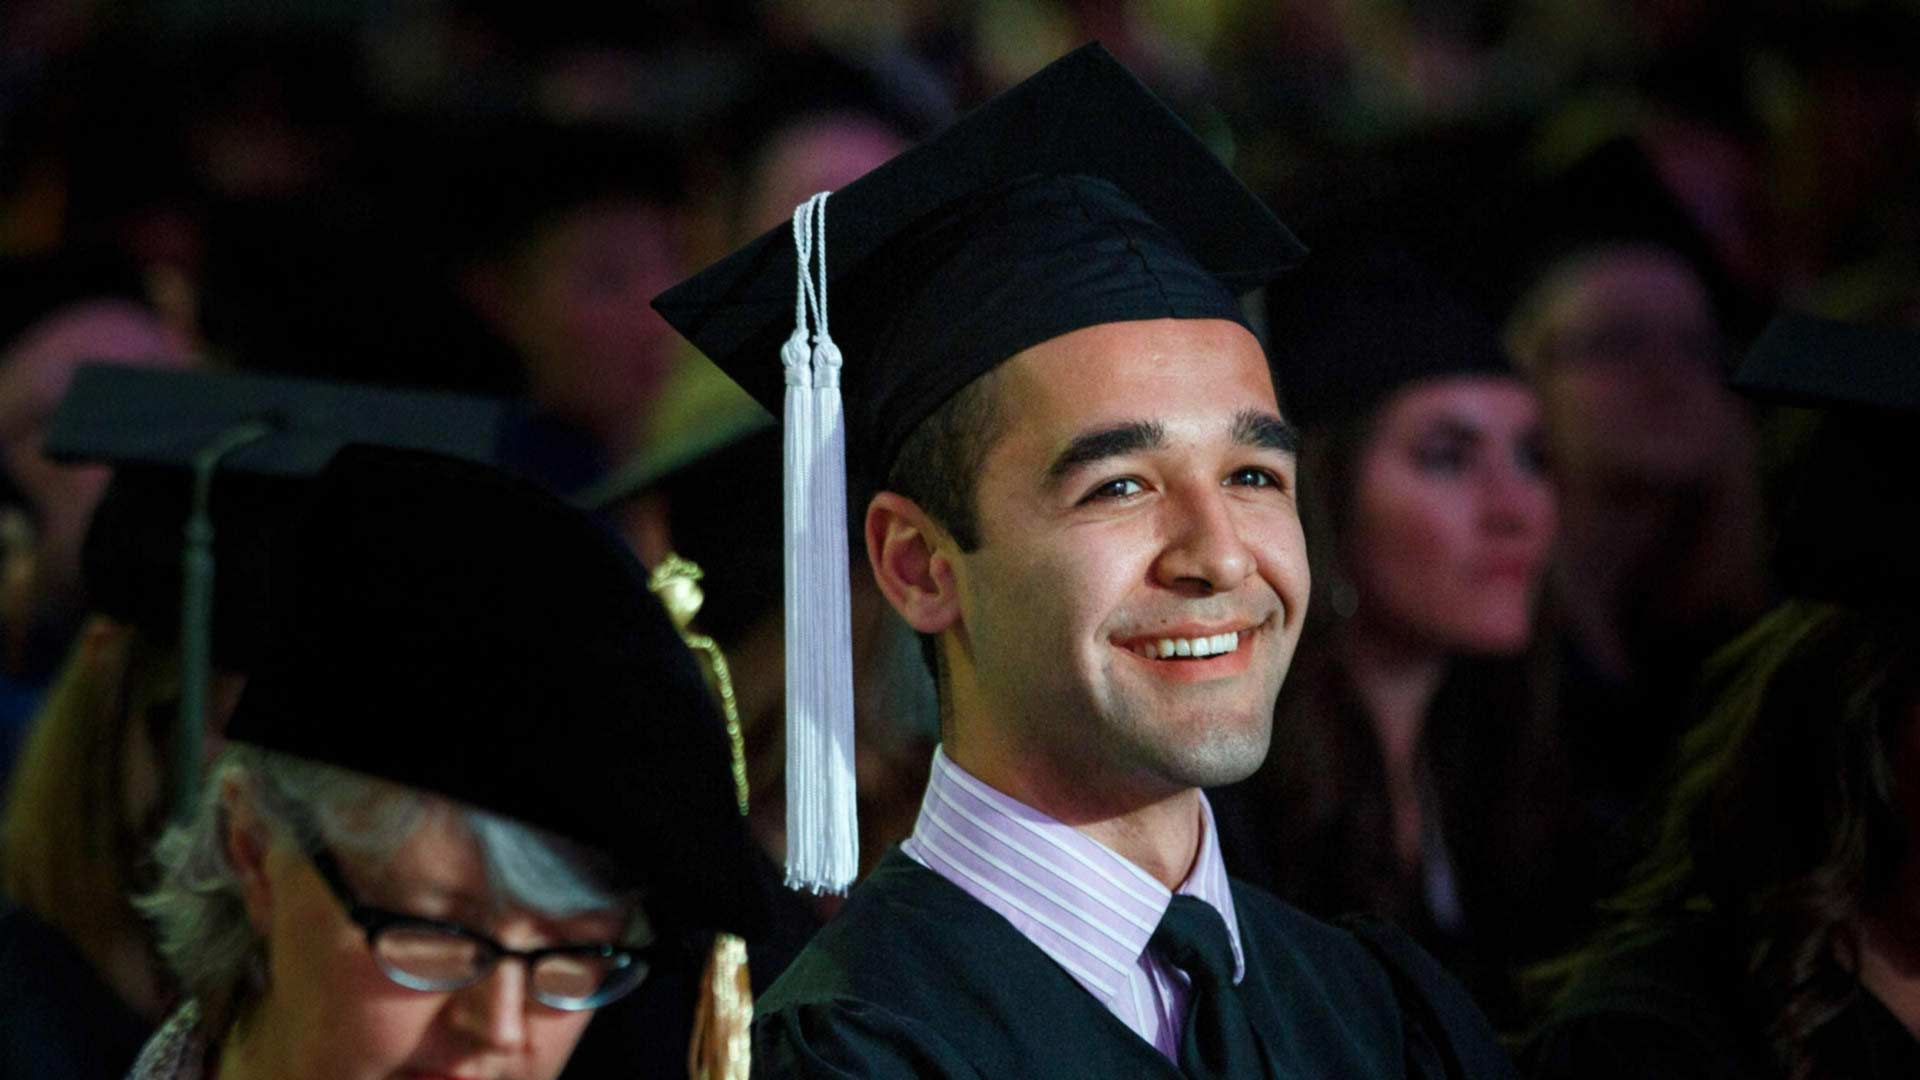 Photo of a Latino man at college graduation.